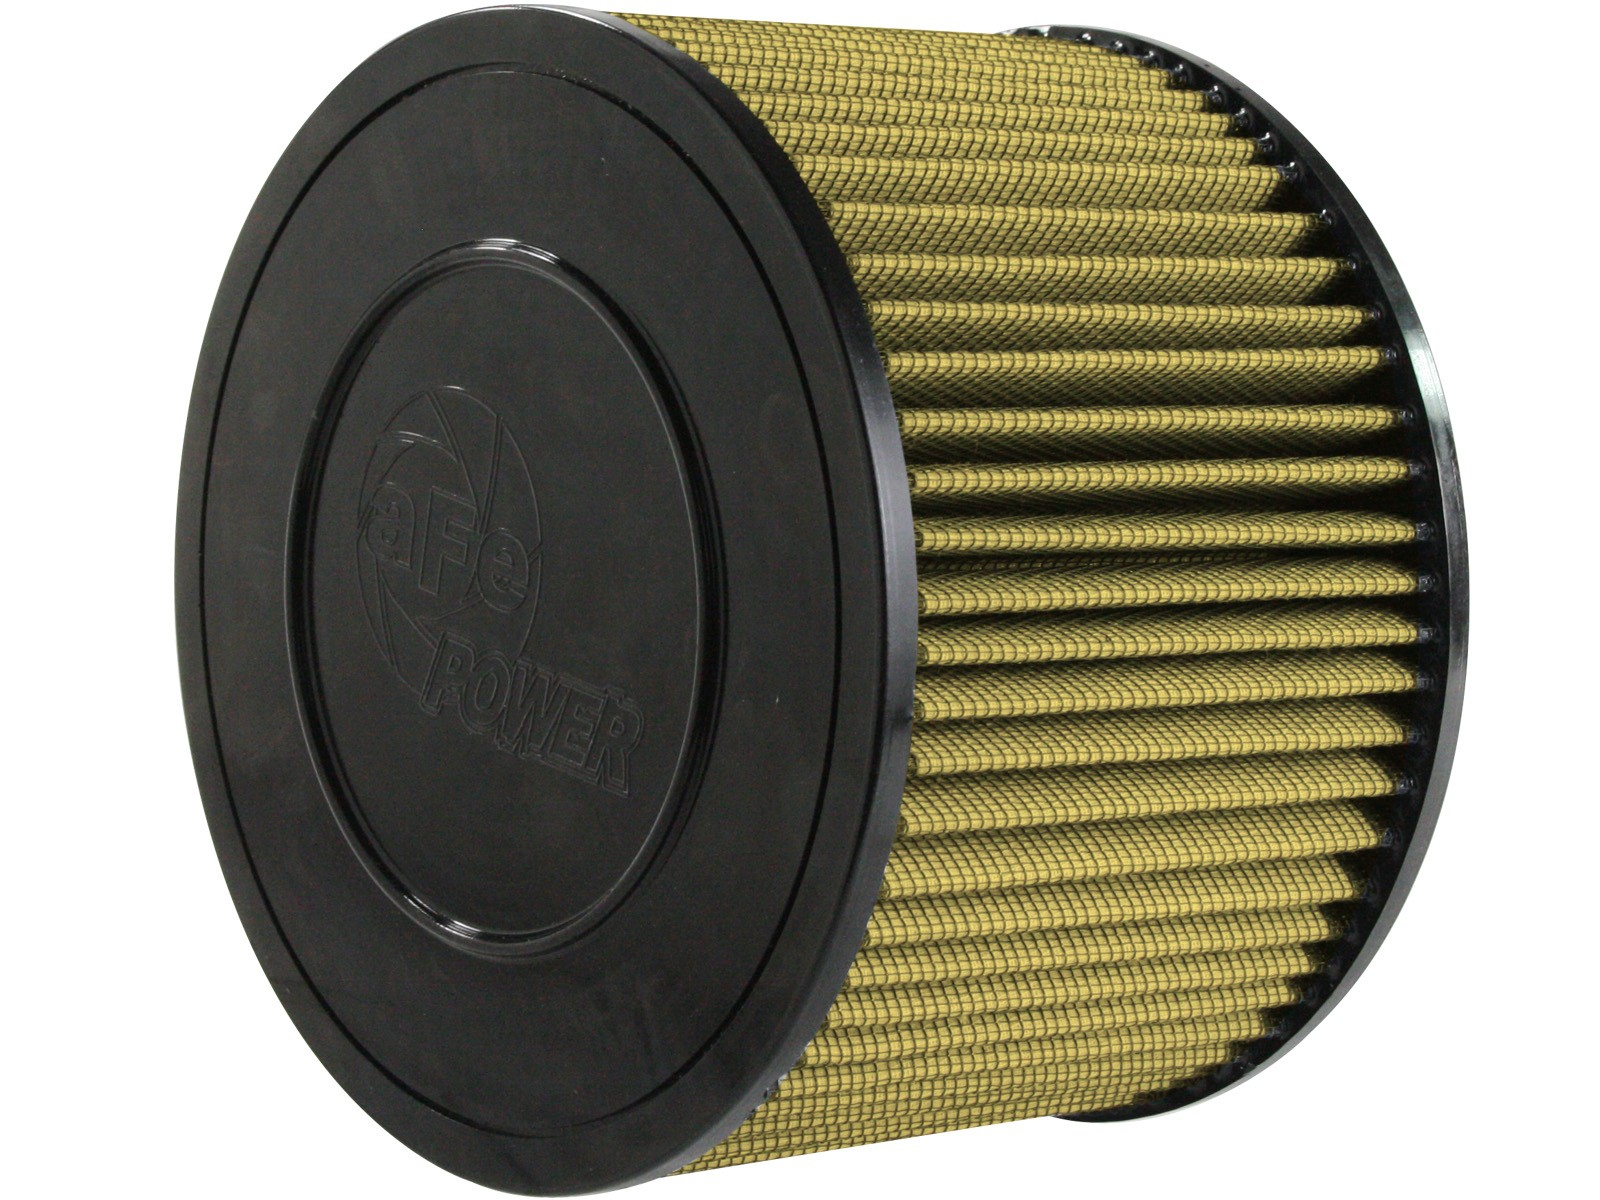 aFe POWER 71-10120 Magnum FLOW Pro GUARD7 Air Filter